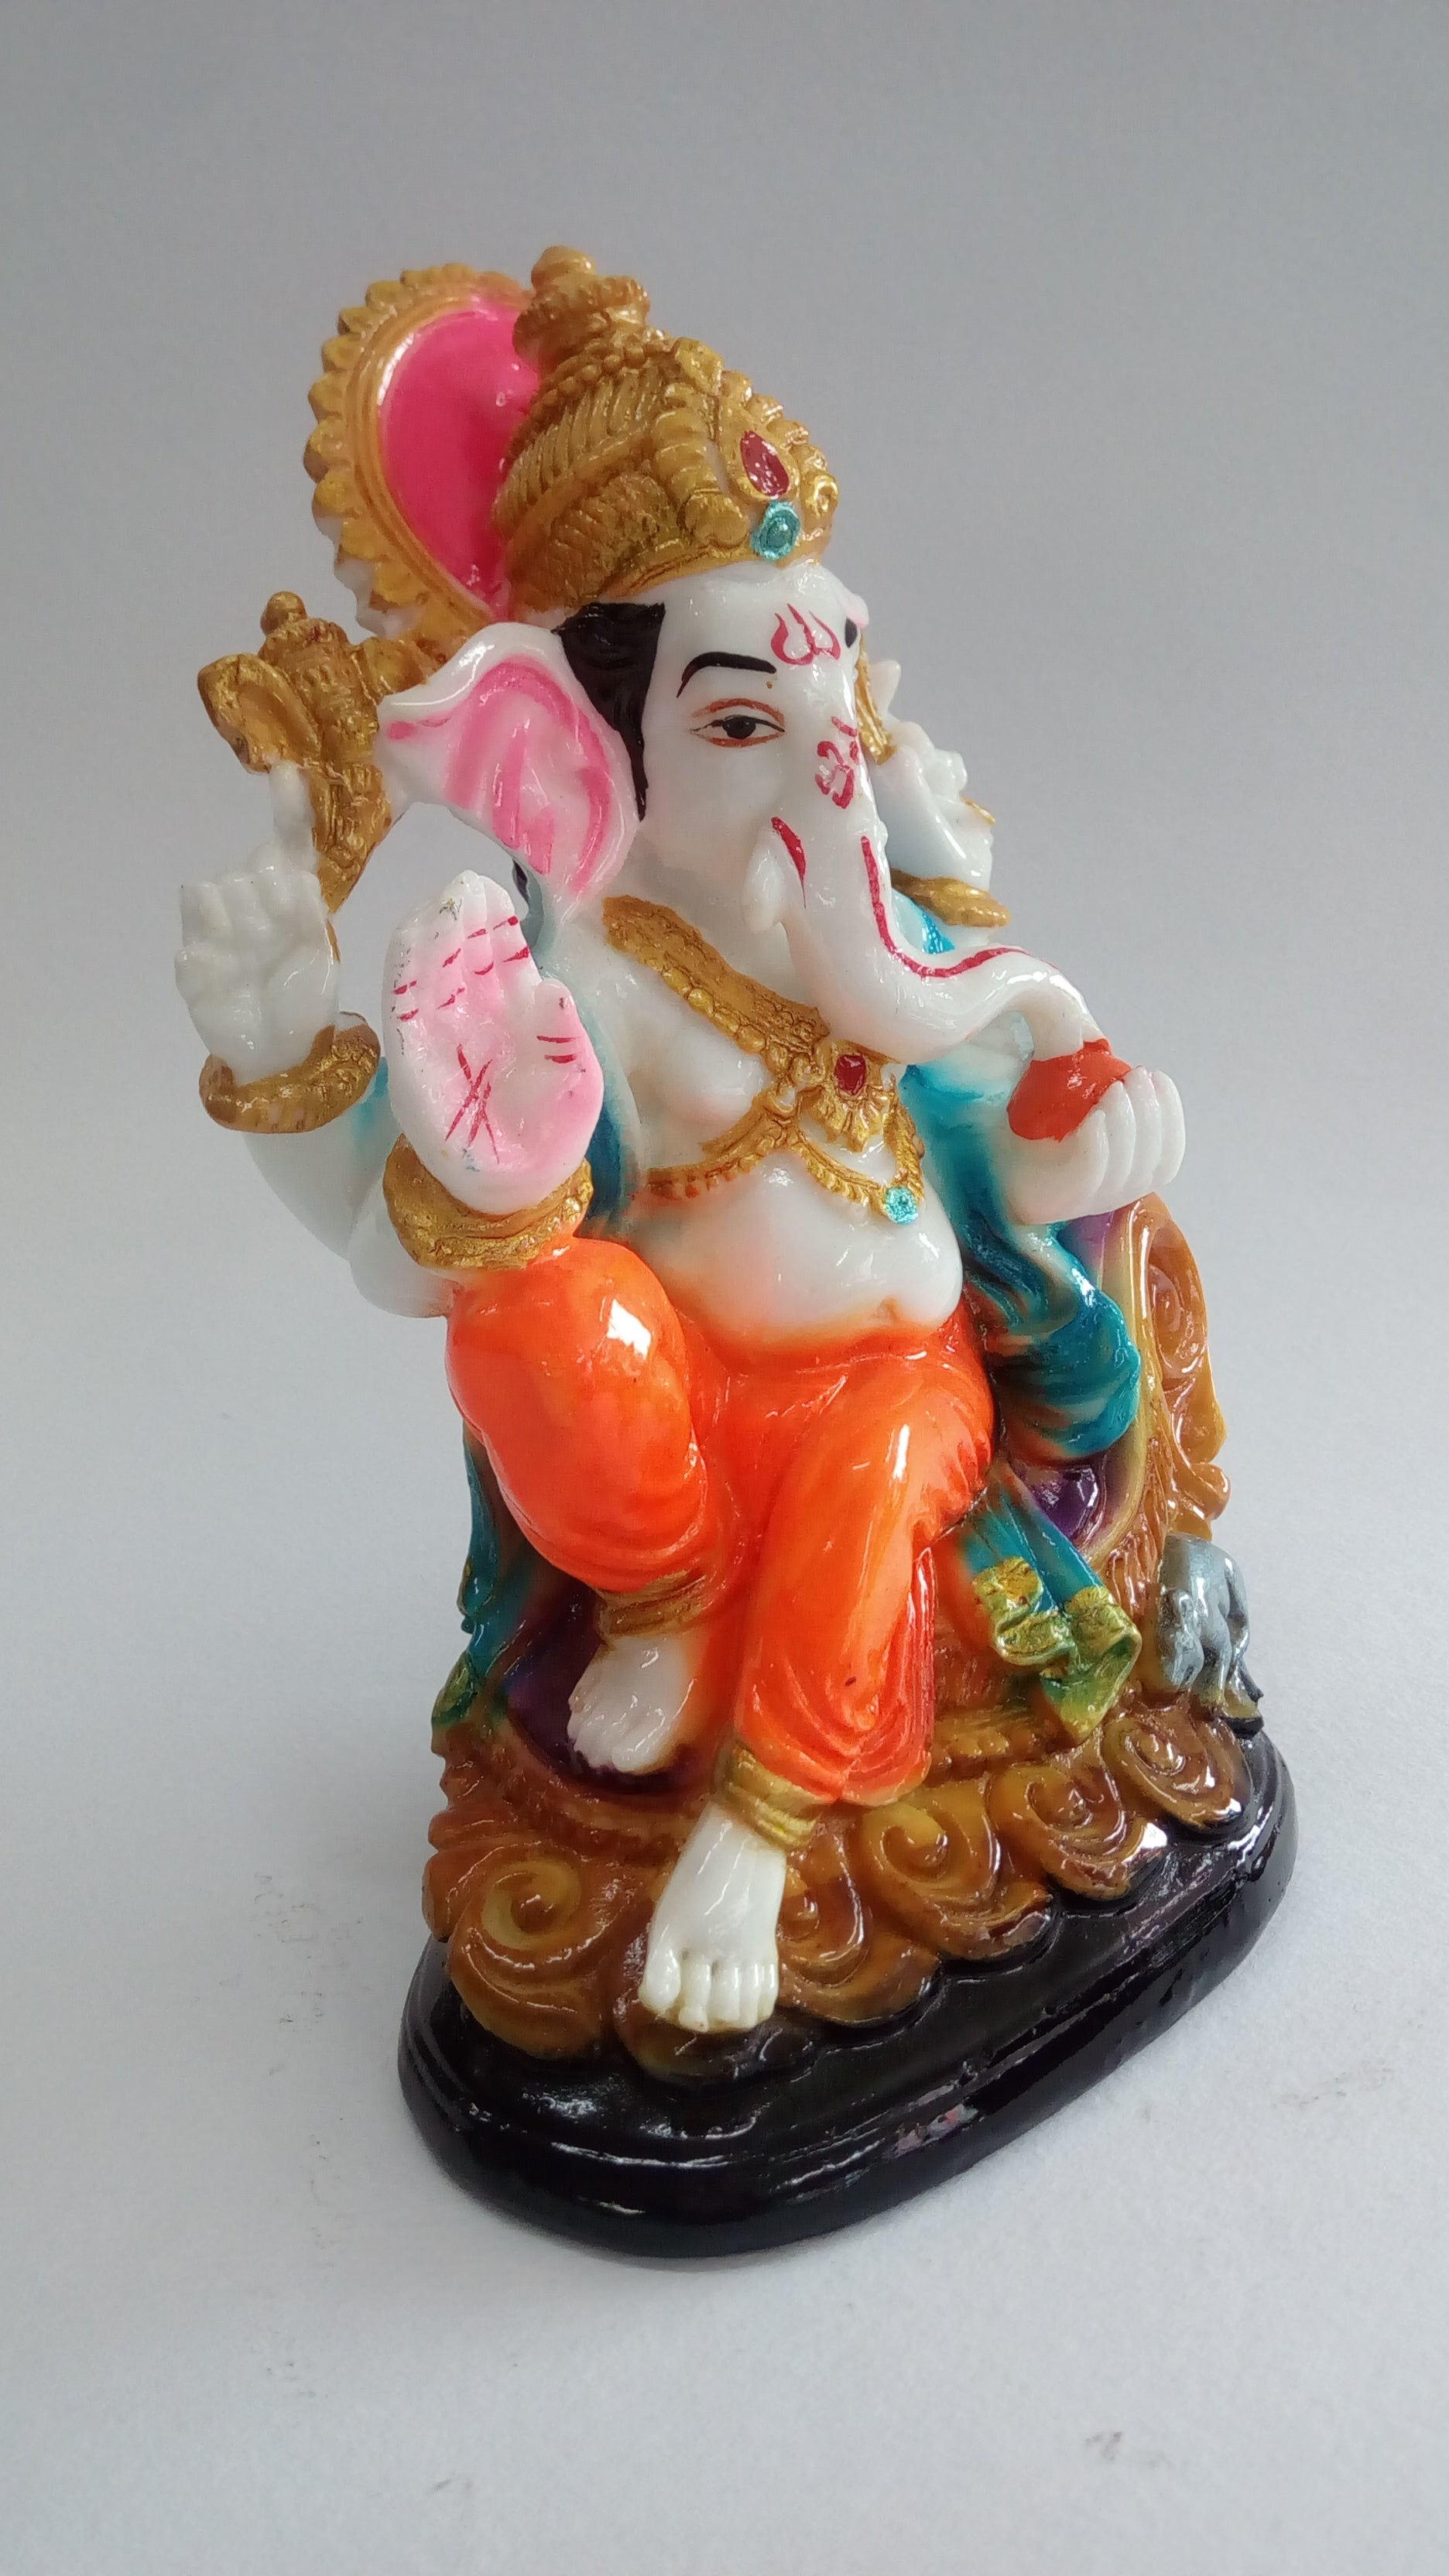 Buy Ganesha Small SE0026-2a Online